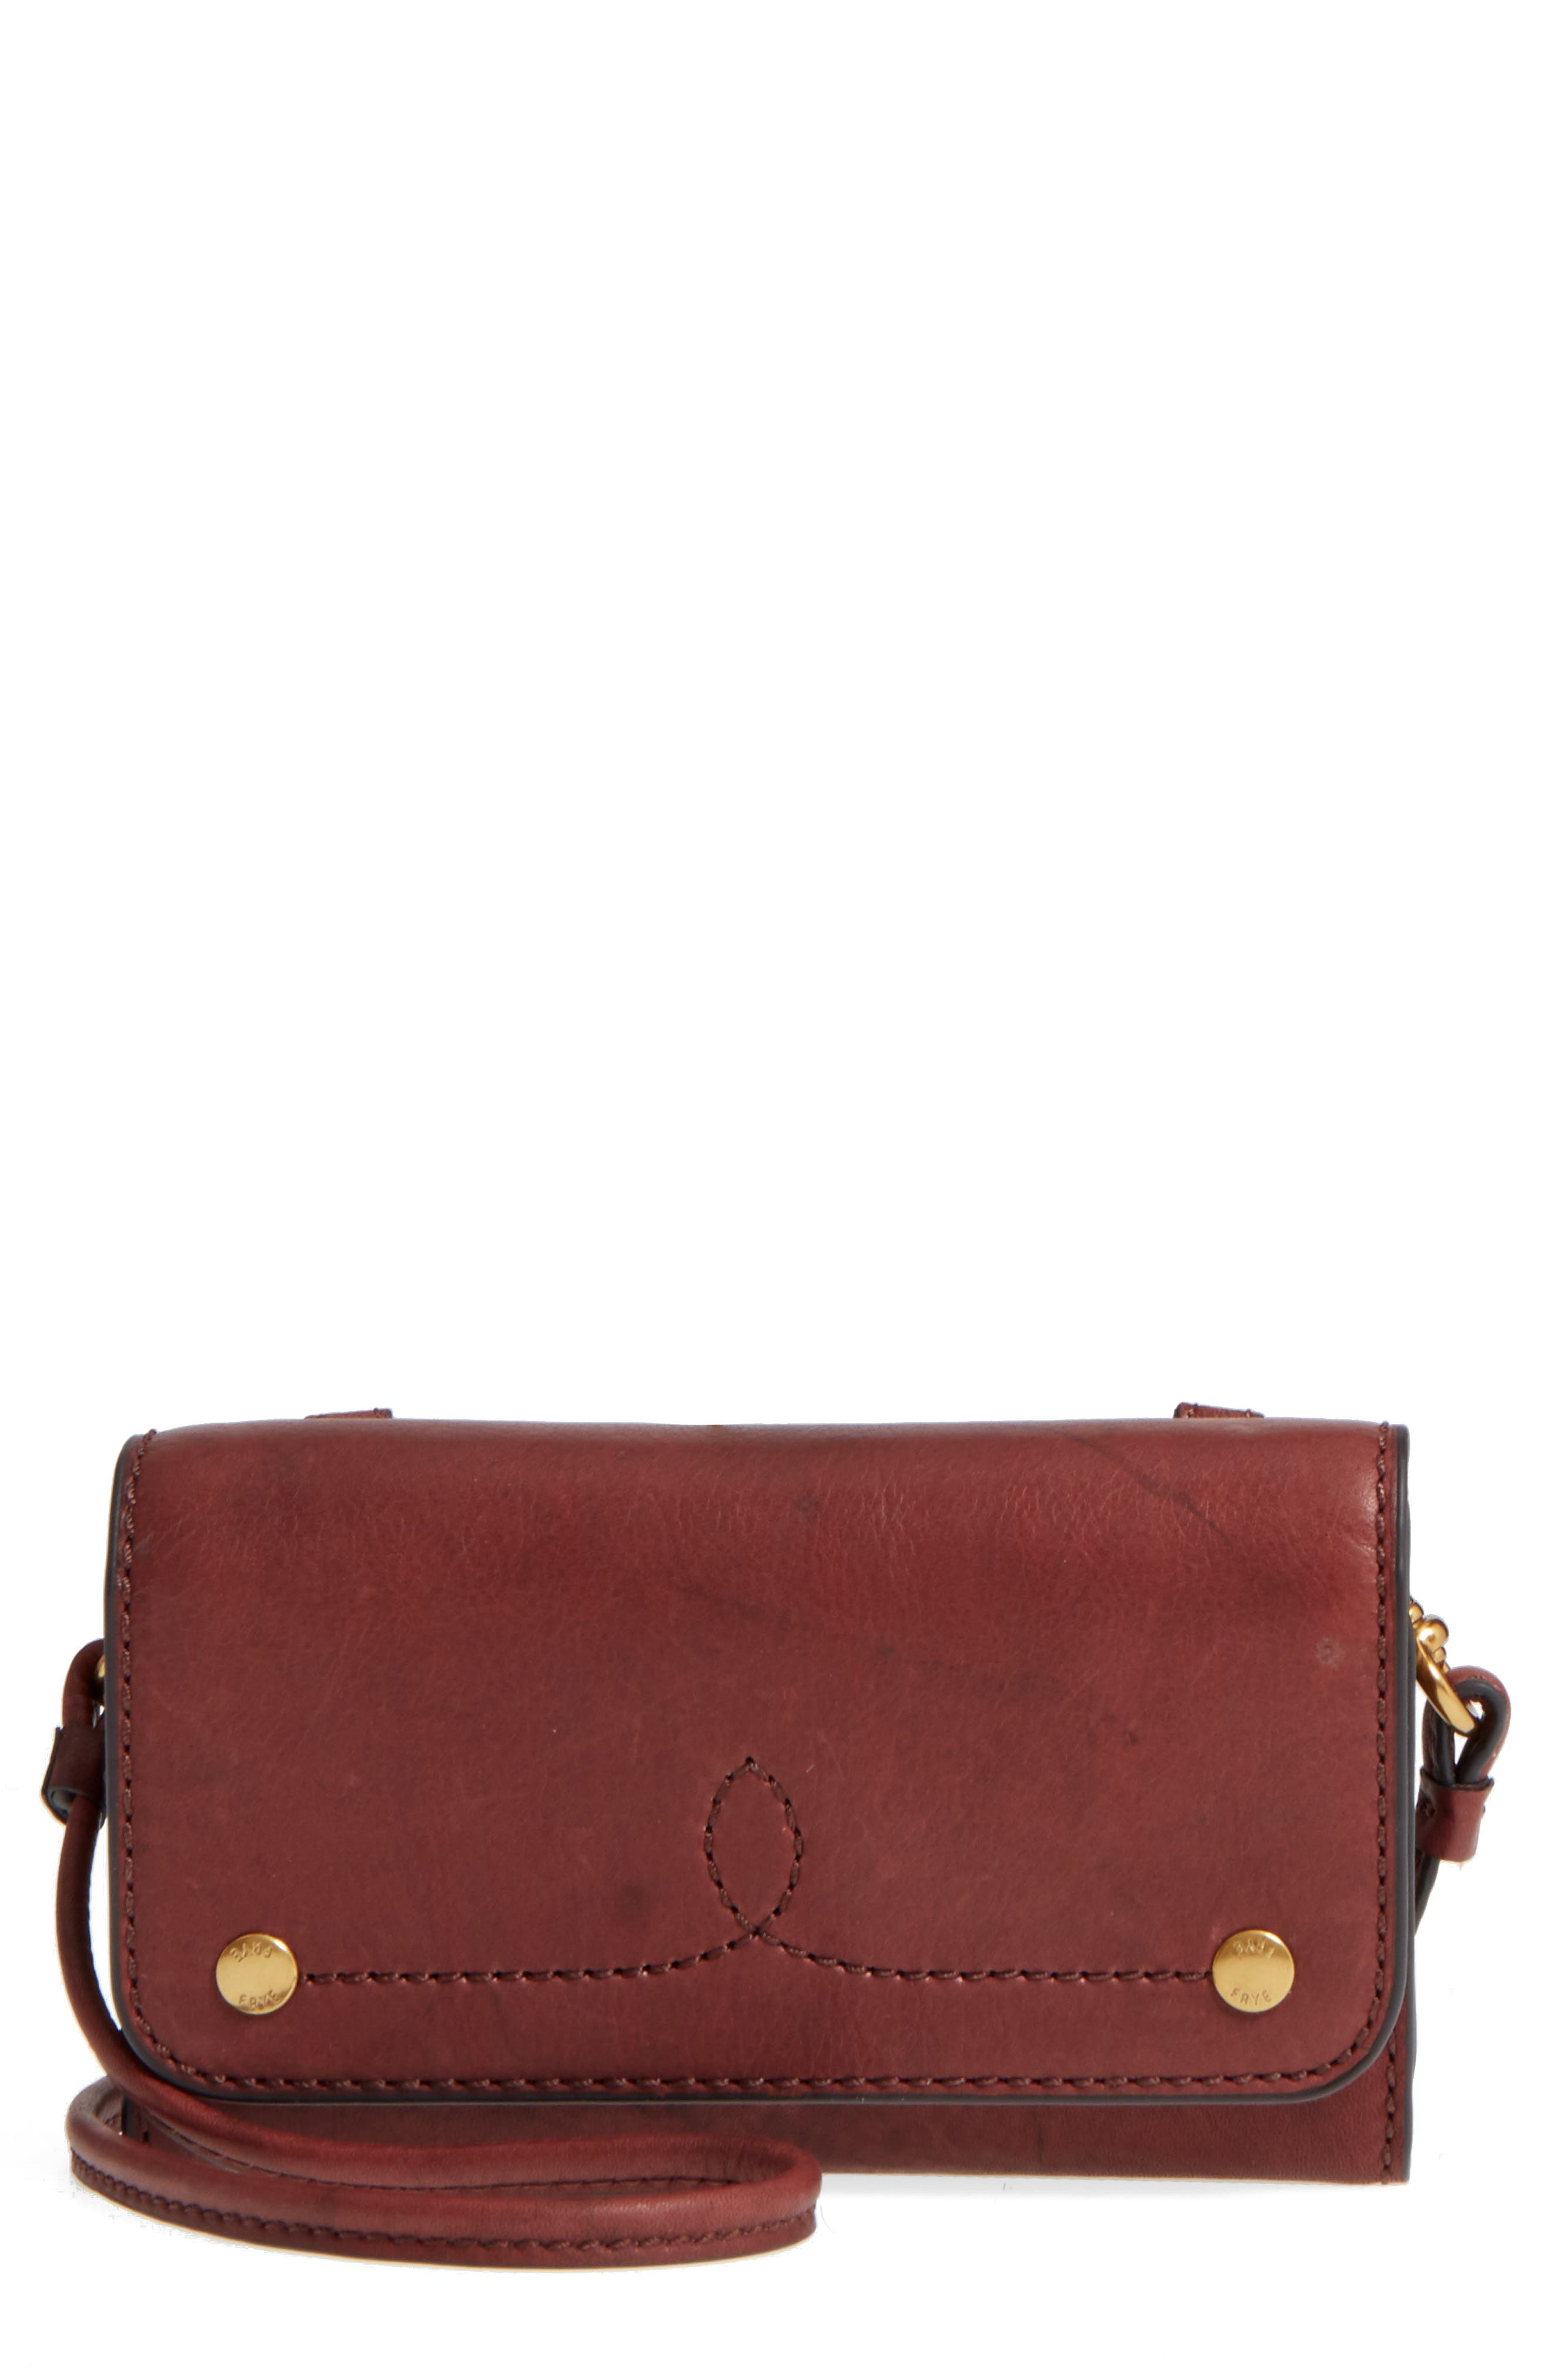 Frye Campus Rivet Leather Smartphone Wallet with Crossbody Strap